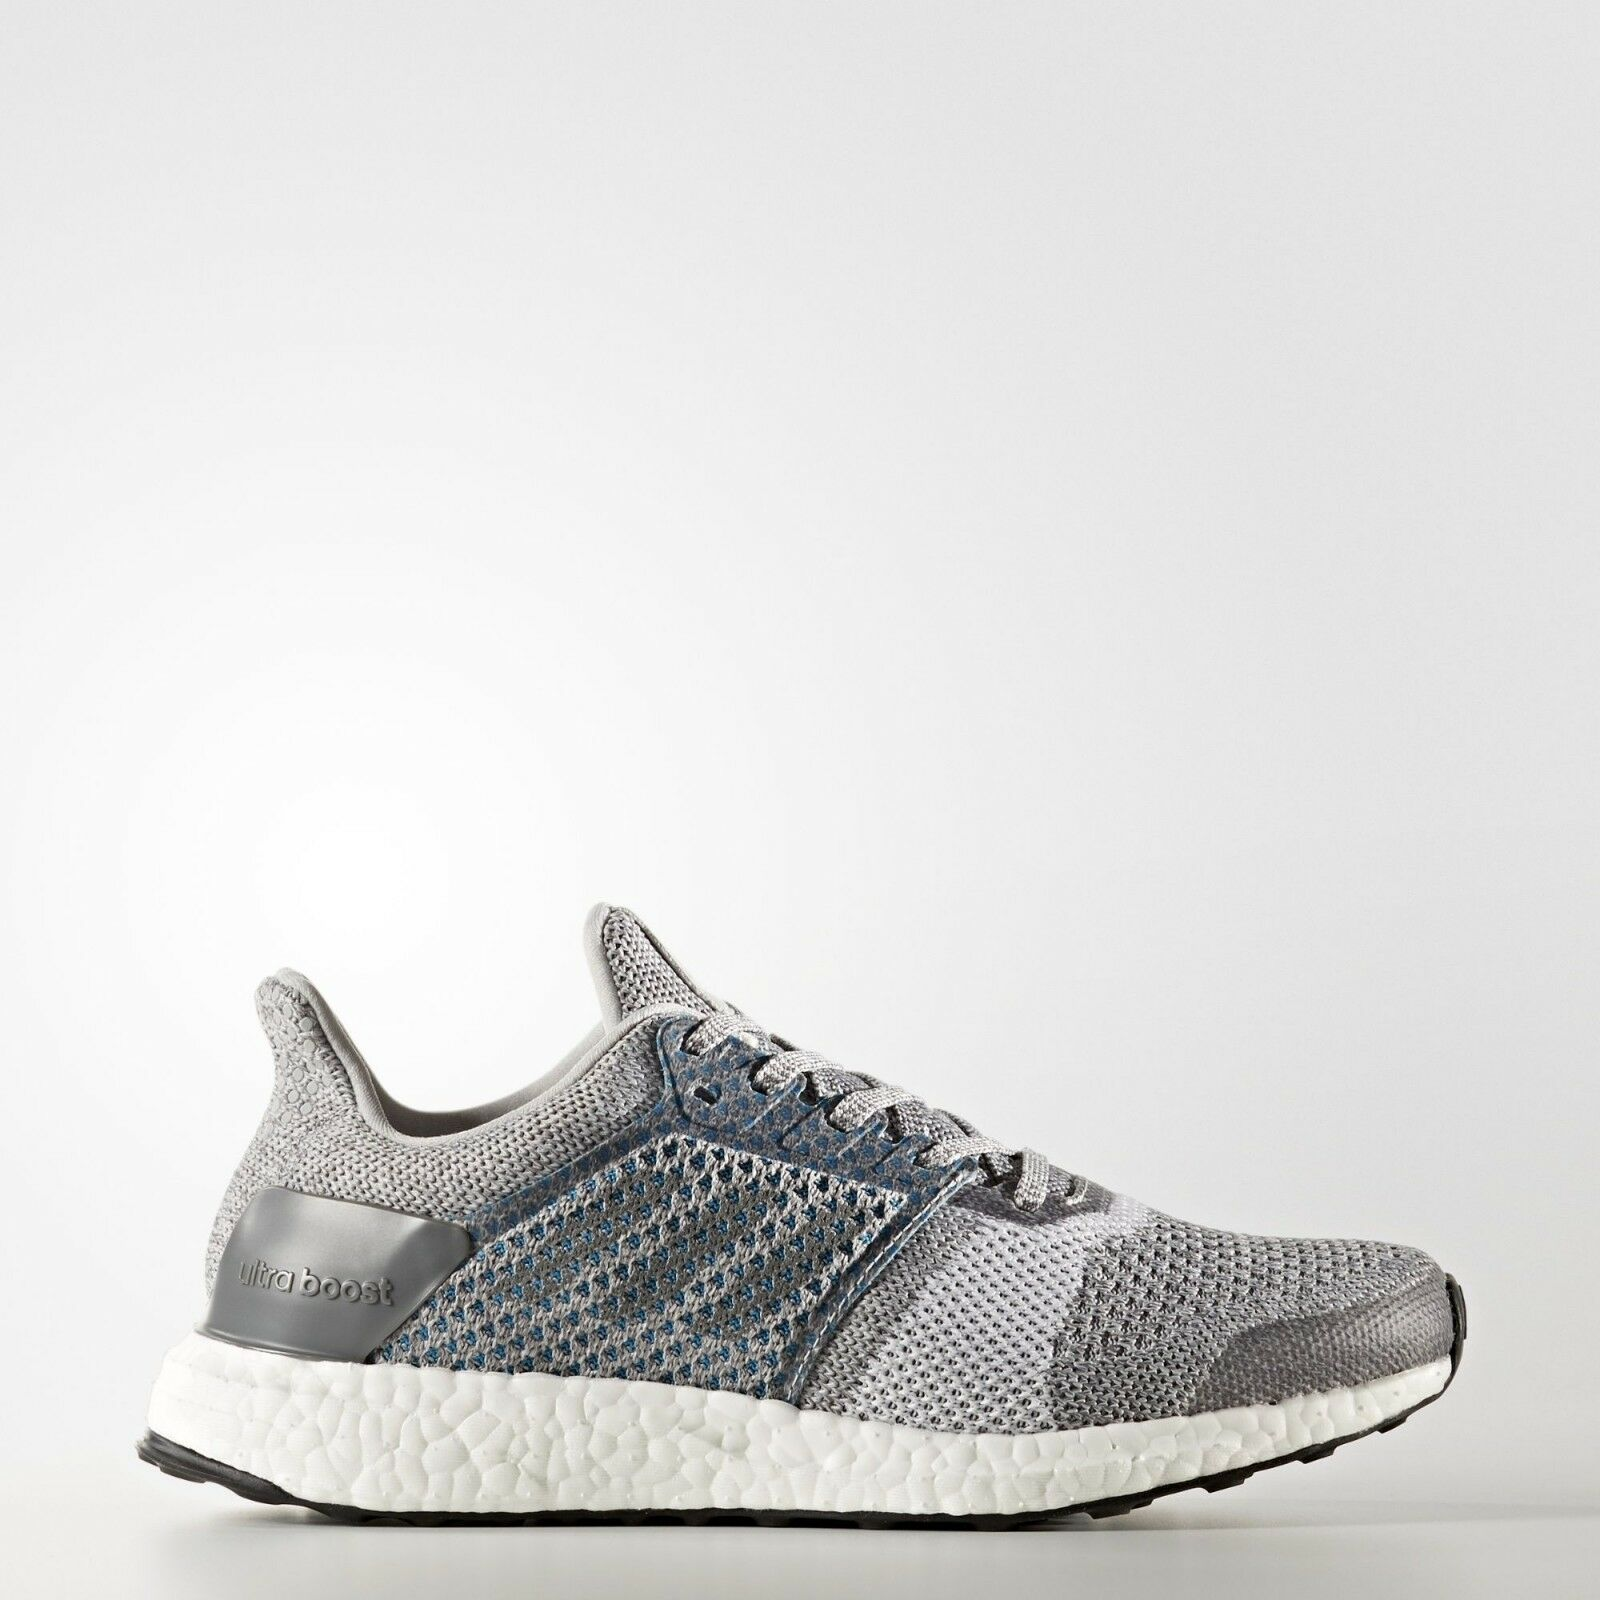 Adidas ultra Boost 11 St Gris Blanco mujer 11 11 11 Boost hombres 1 8951b3